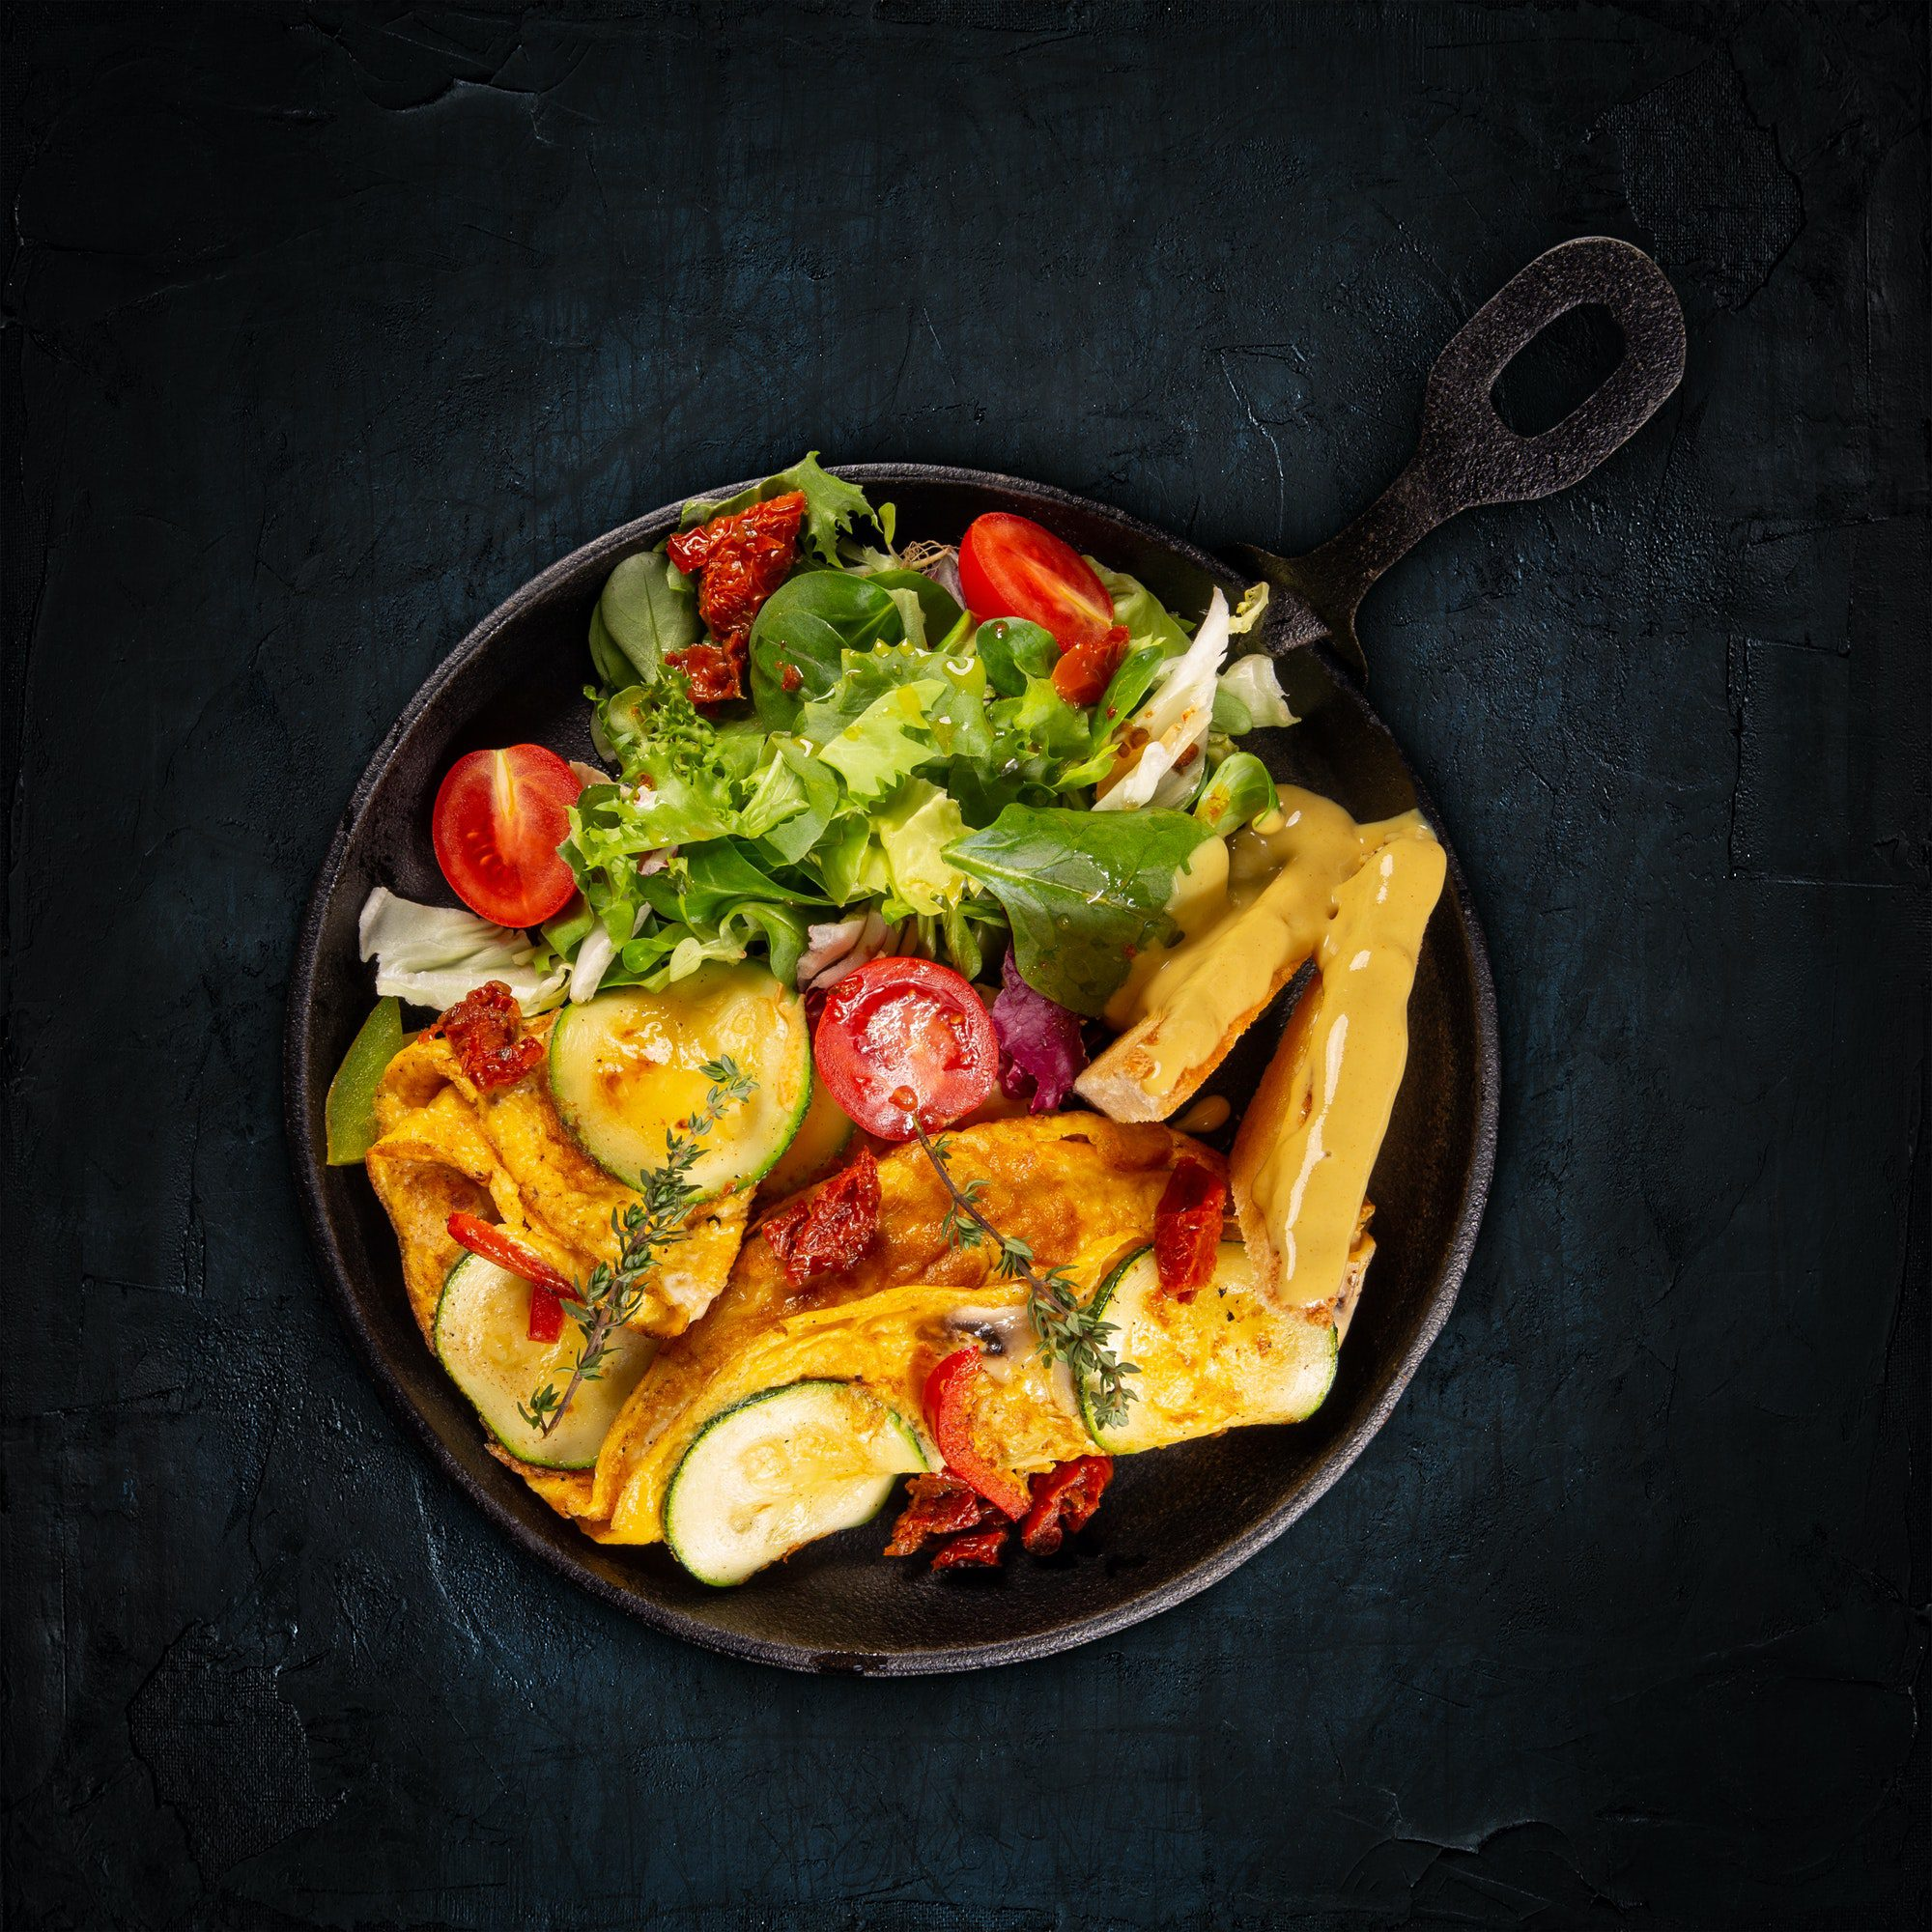 Omelet with veggies